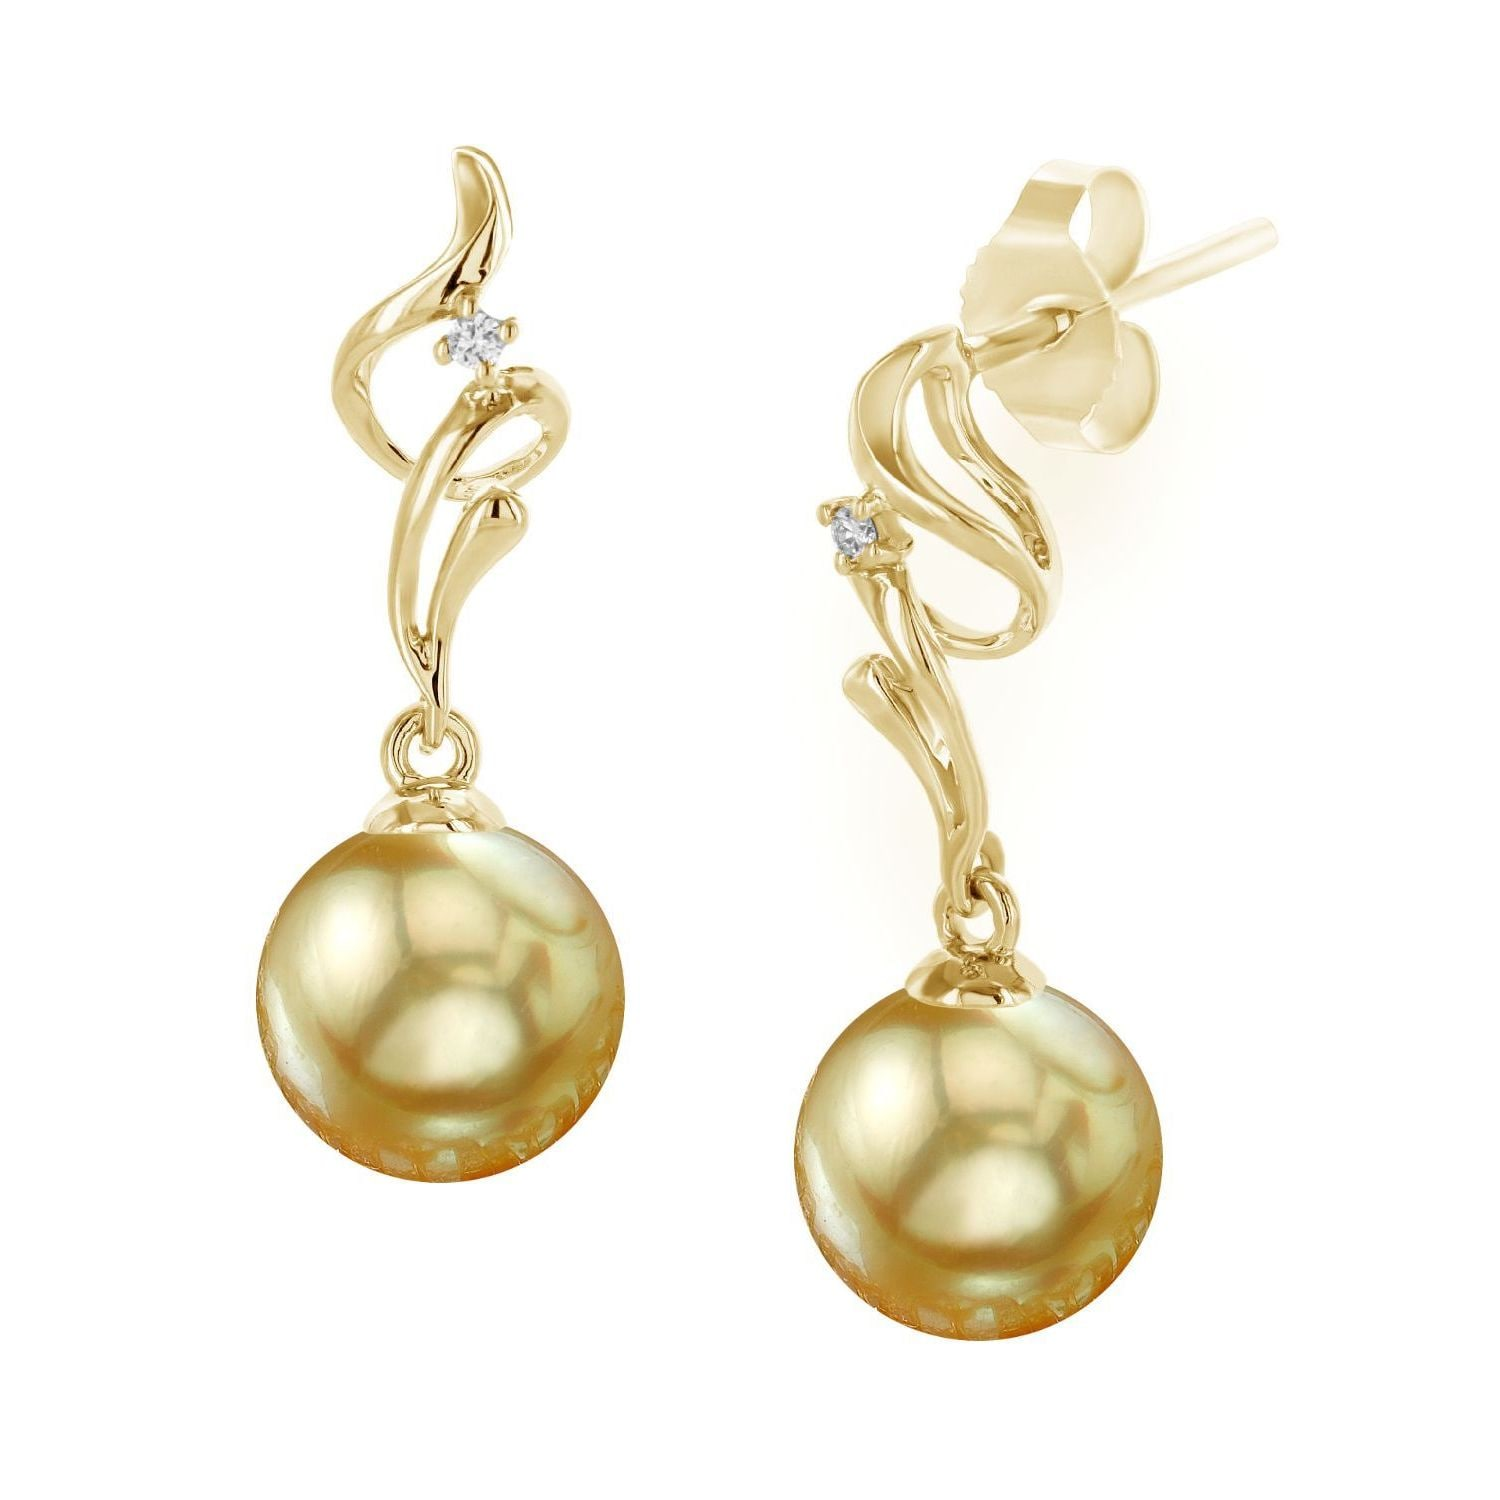 Radiance Pearl 18k Gold Golden South Sea Pearl and Diamon...